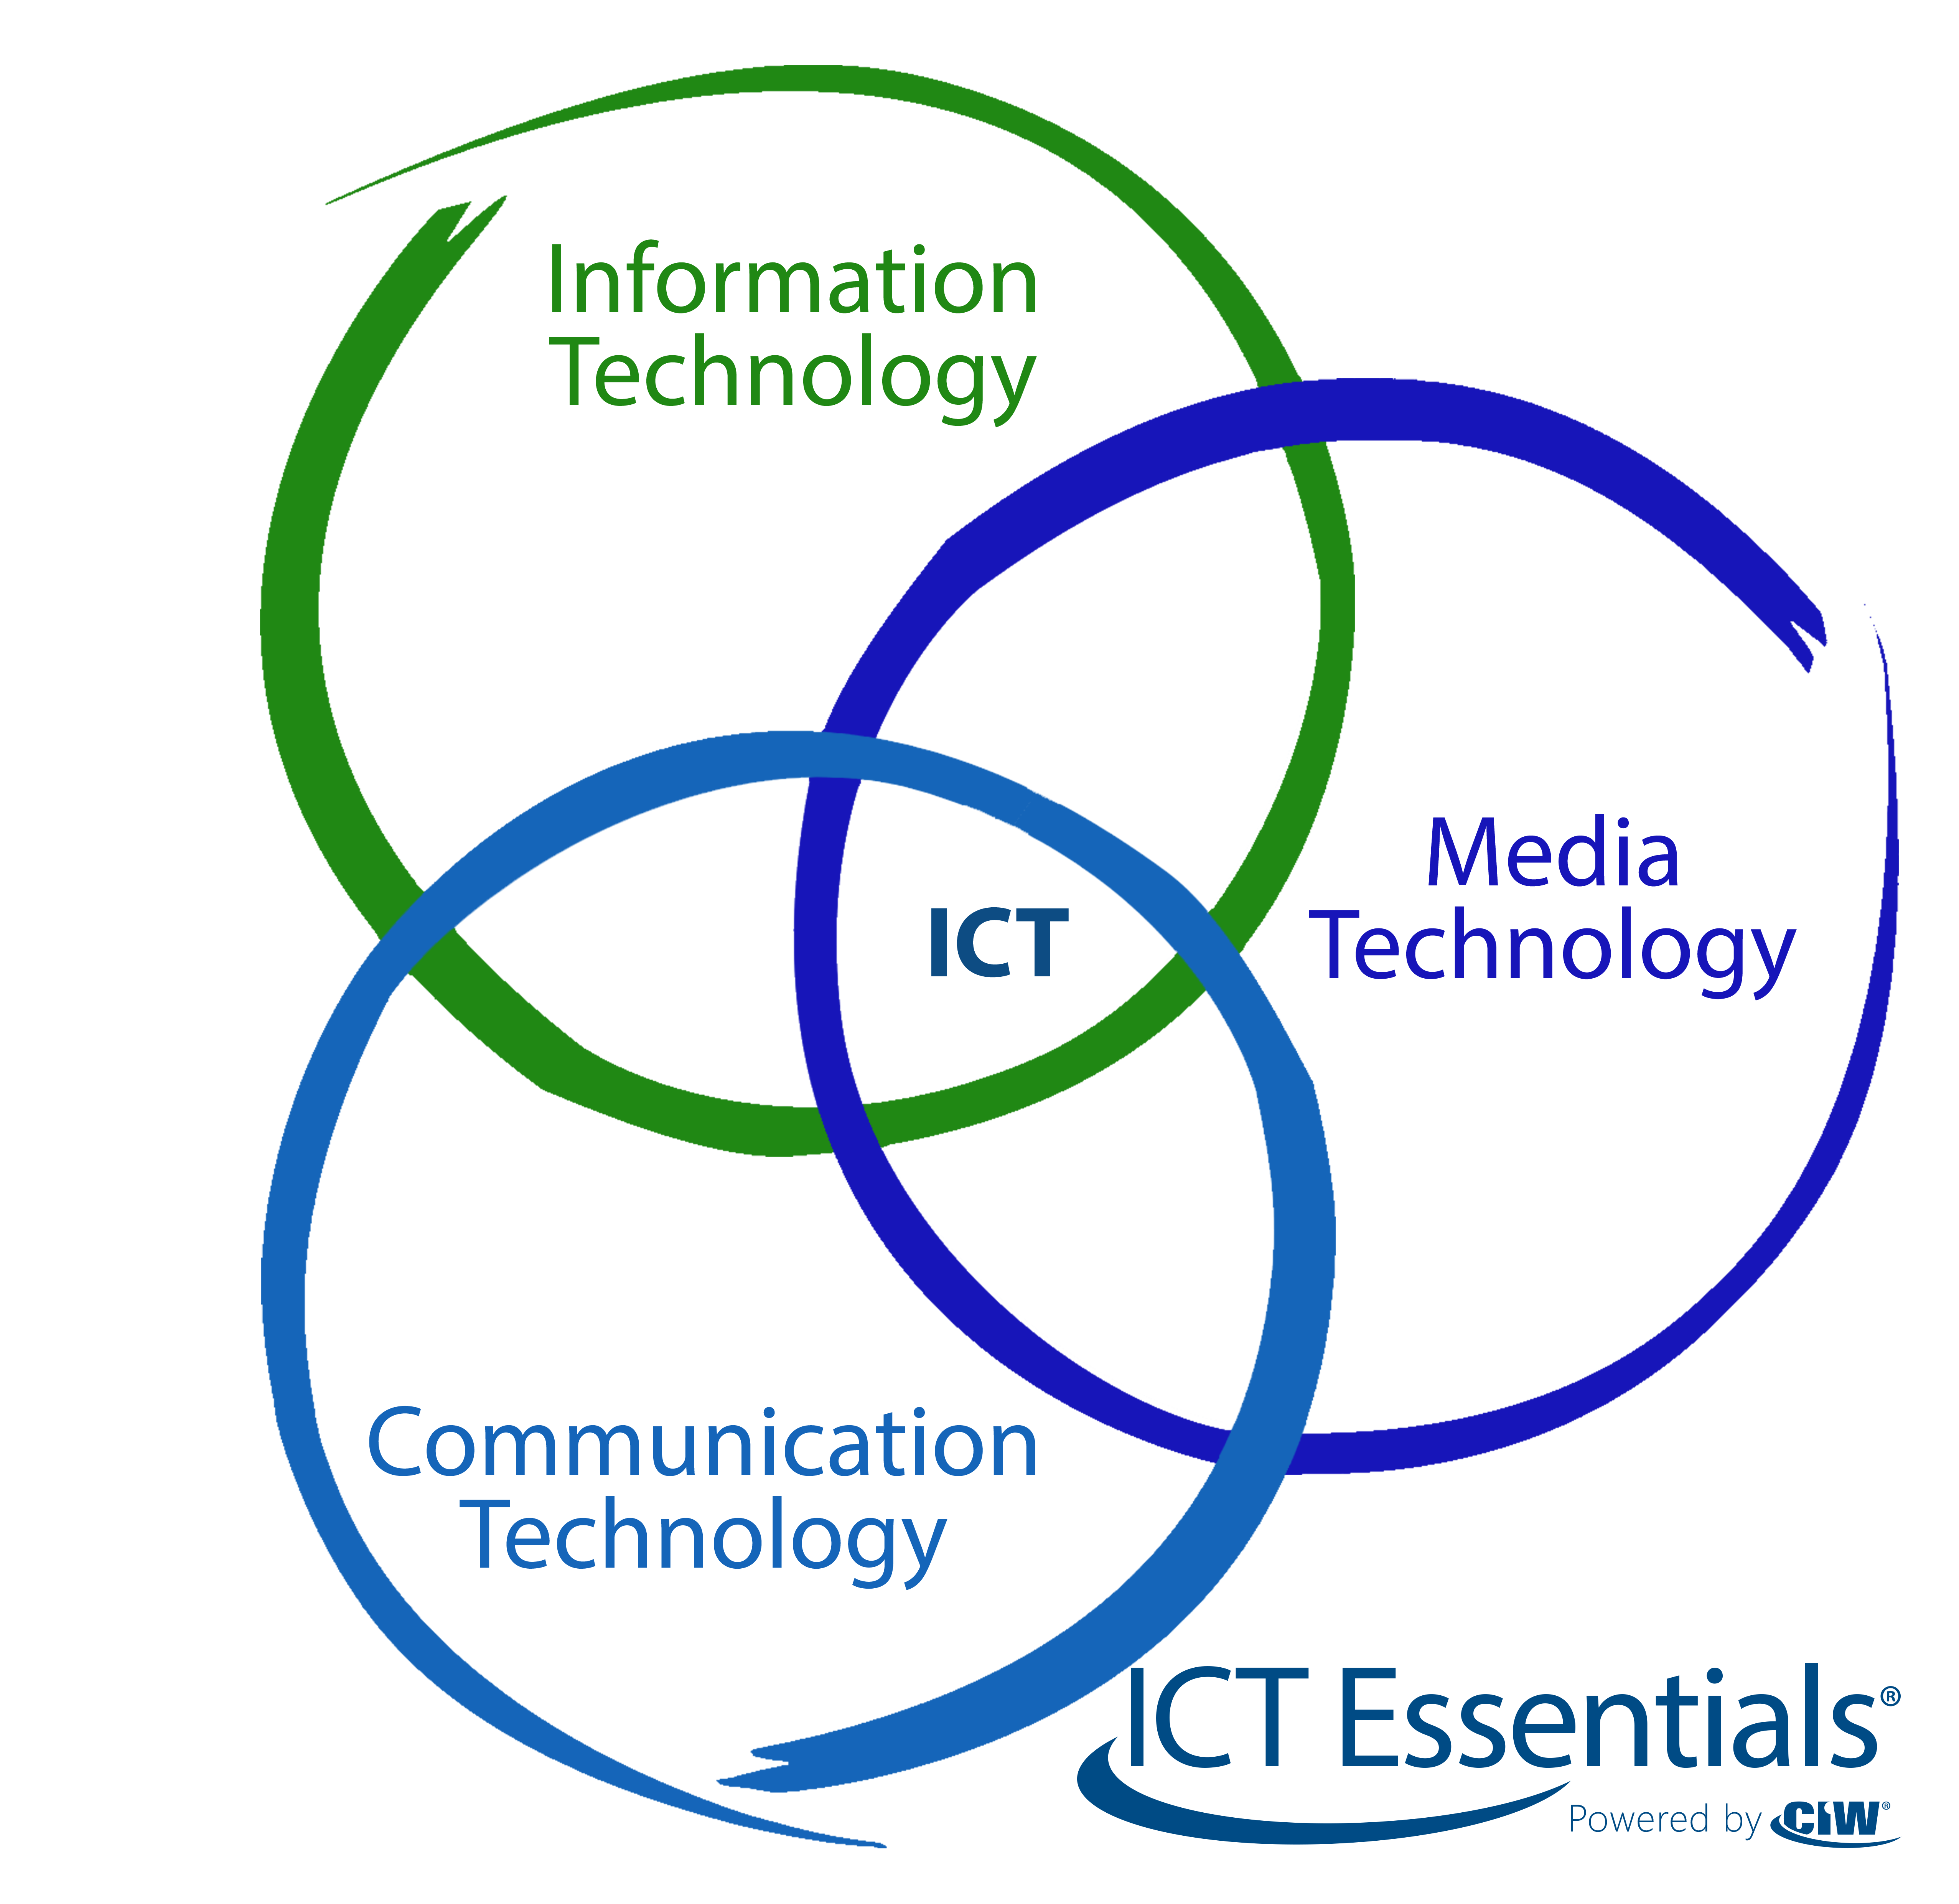 ICT Technology Domains